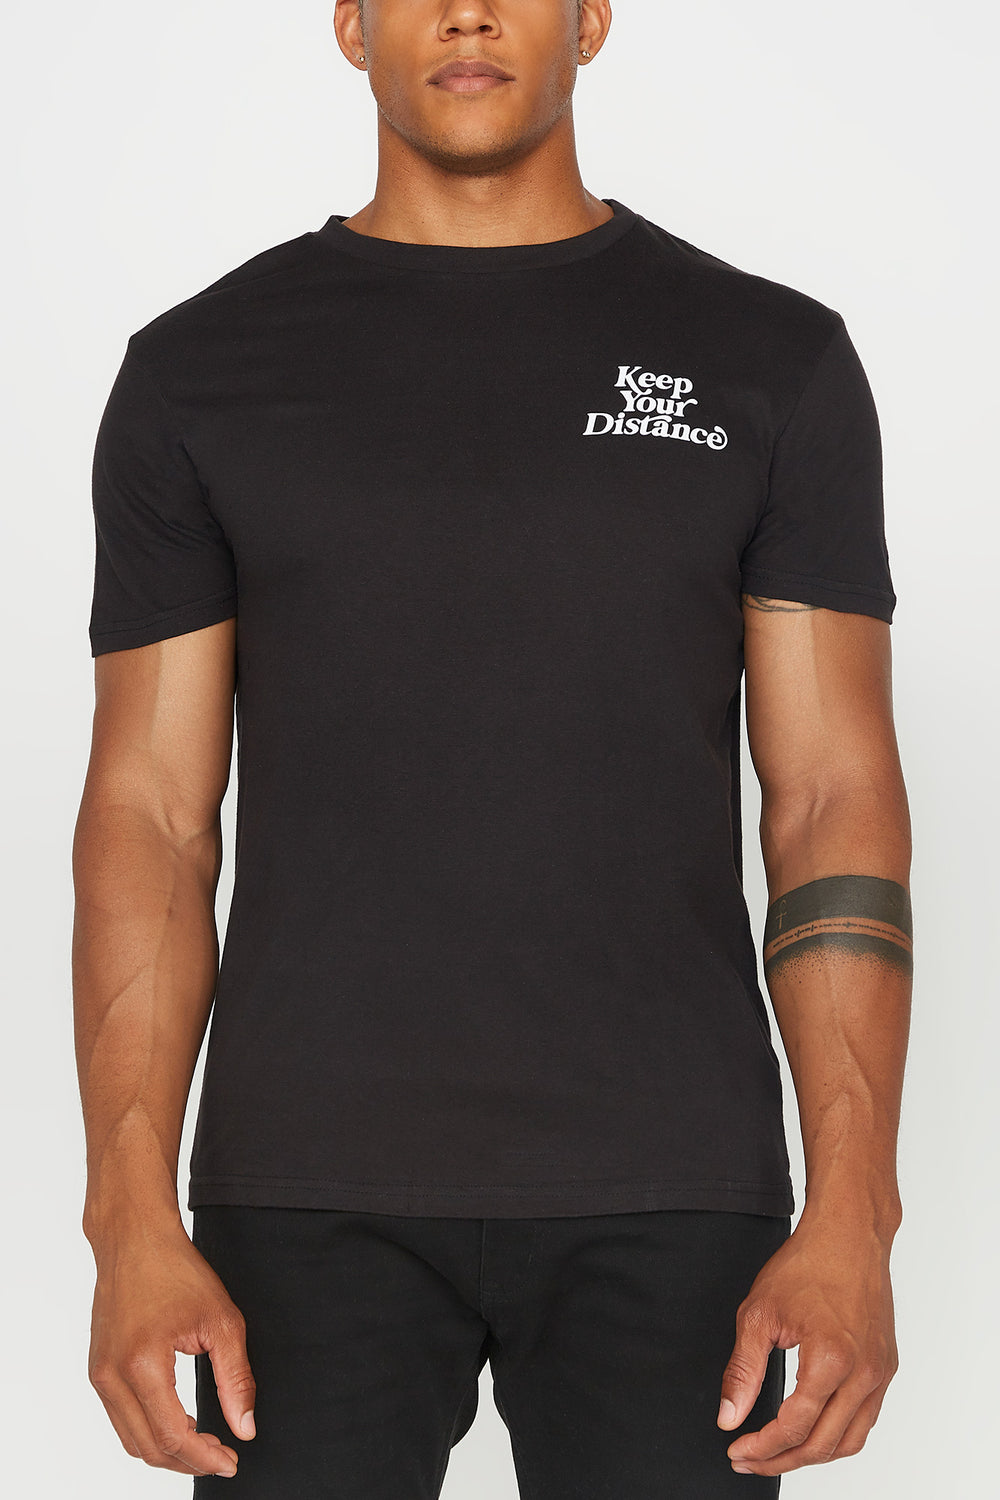 T-Shirt Keep Your Distance Young & Reckless Homme Noir